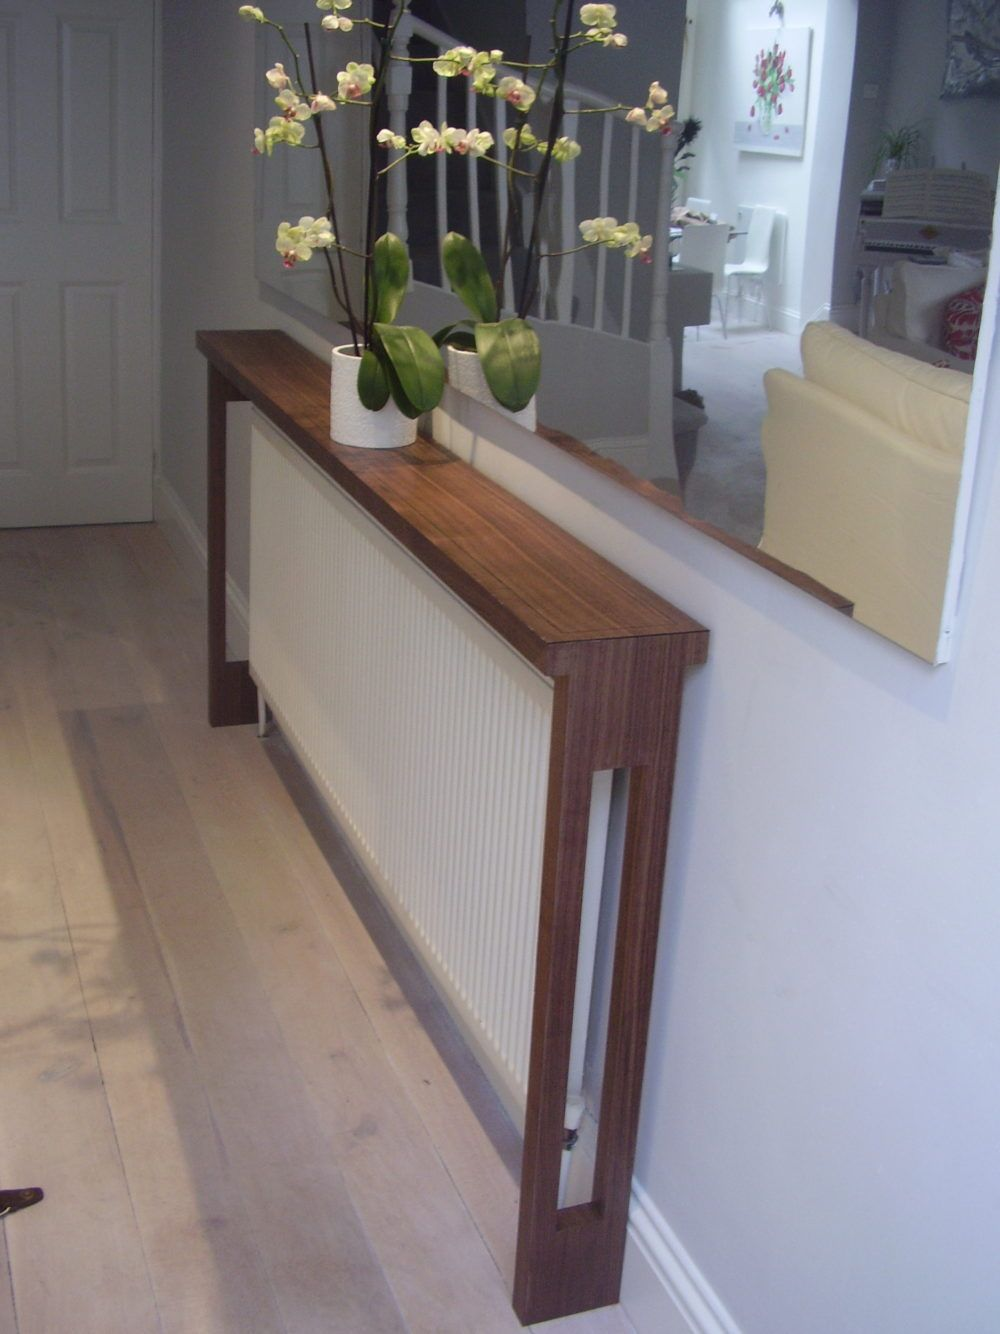 hallway, white wall, narrow wooden console table, white fences, wooden floor, mirror